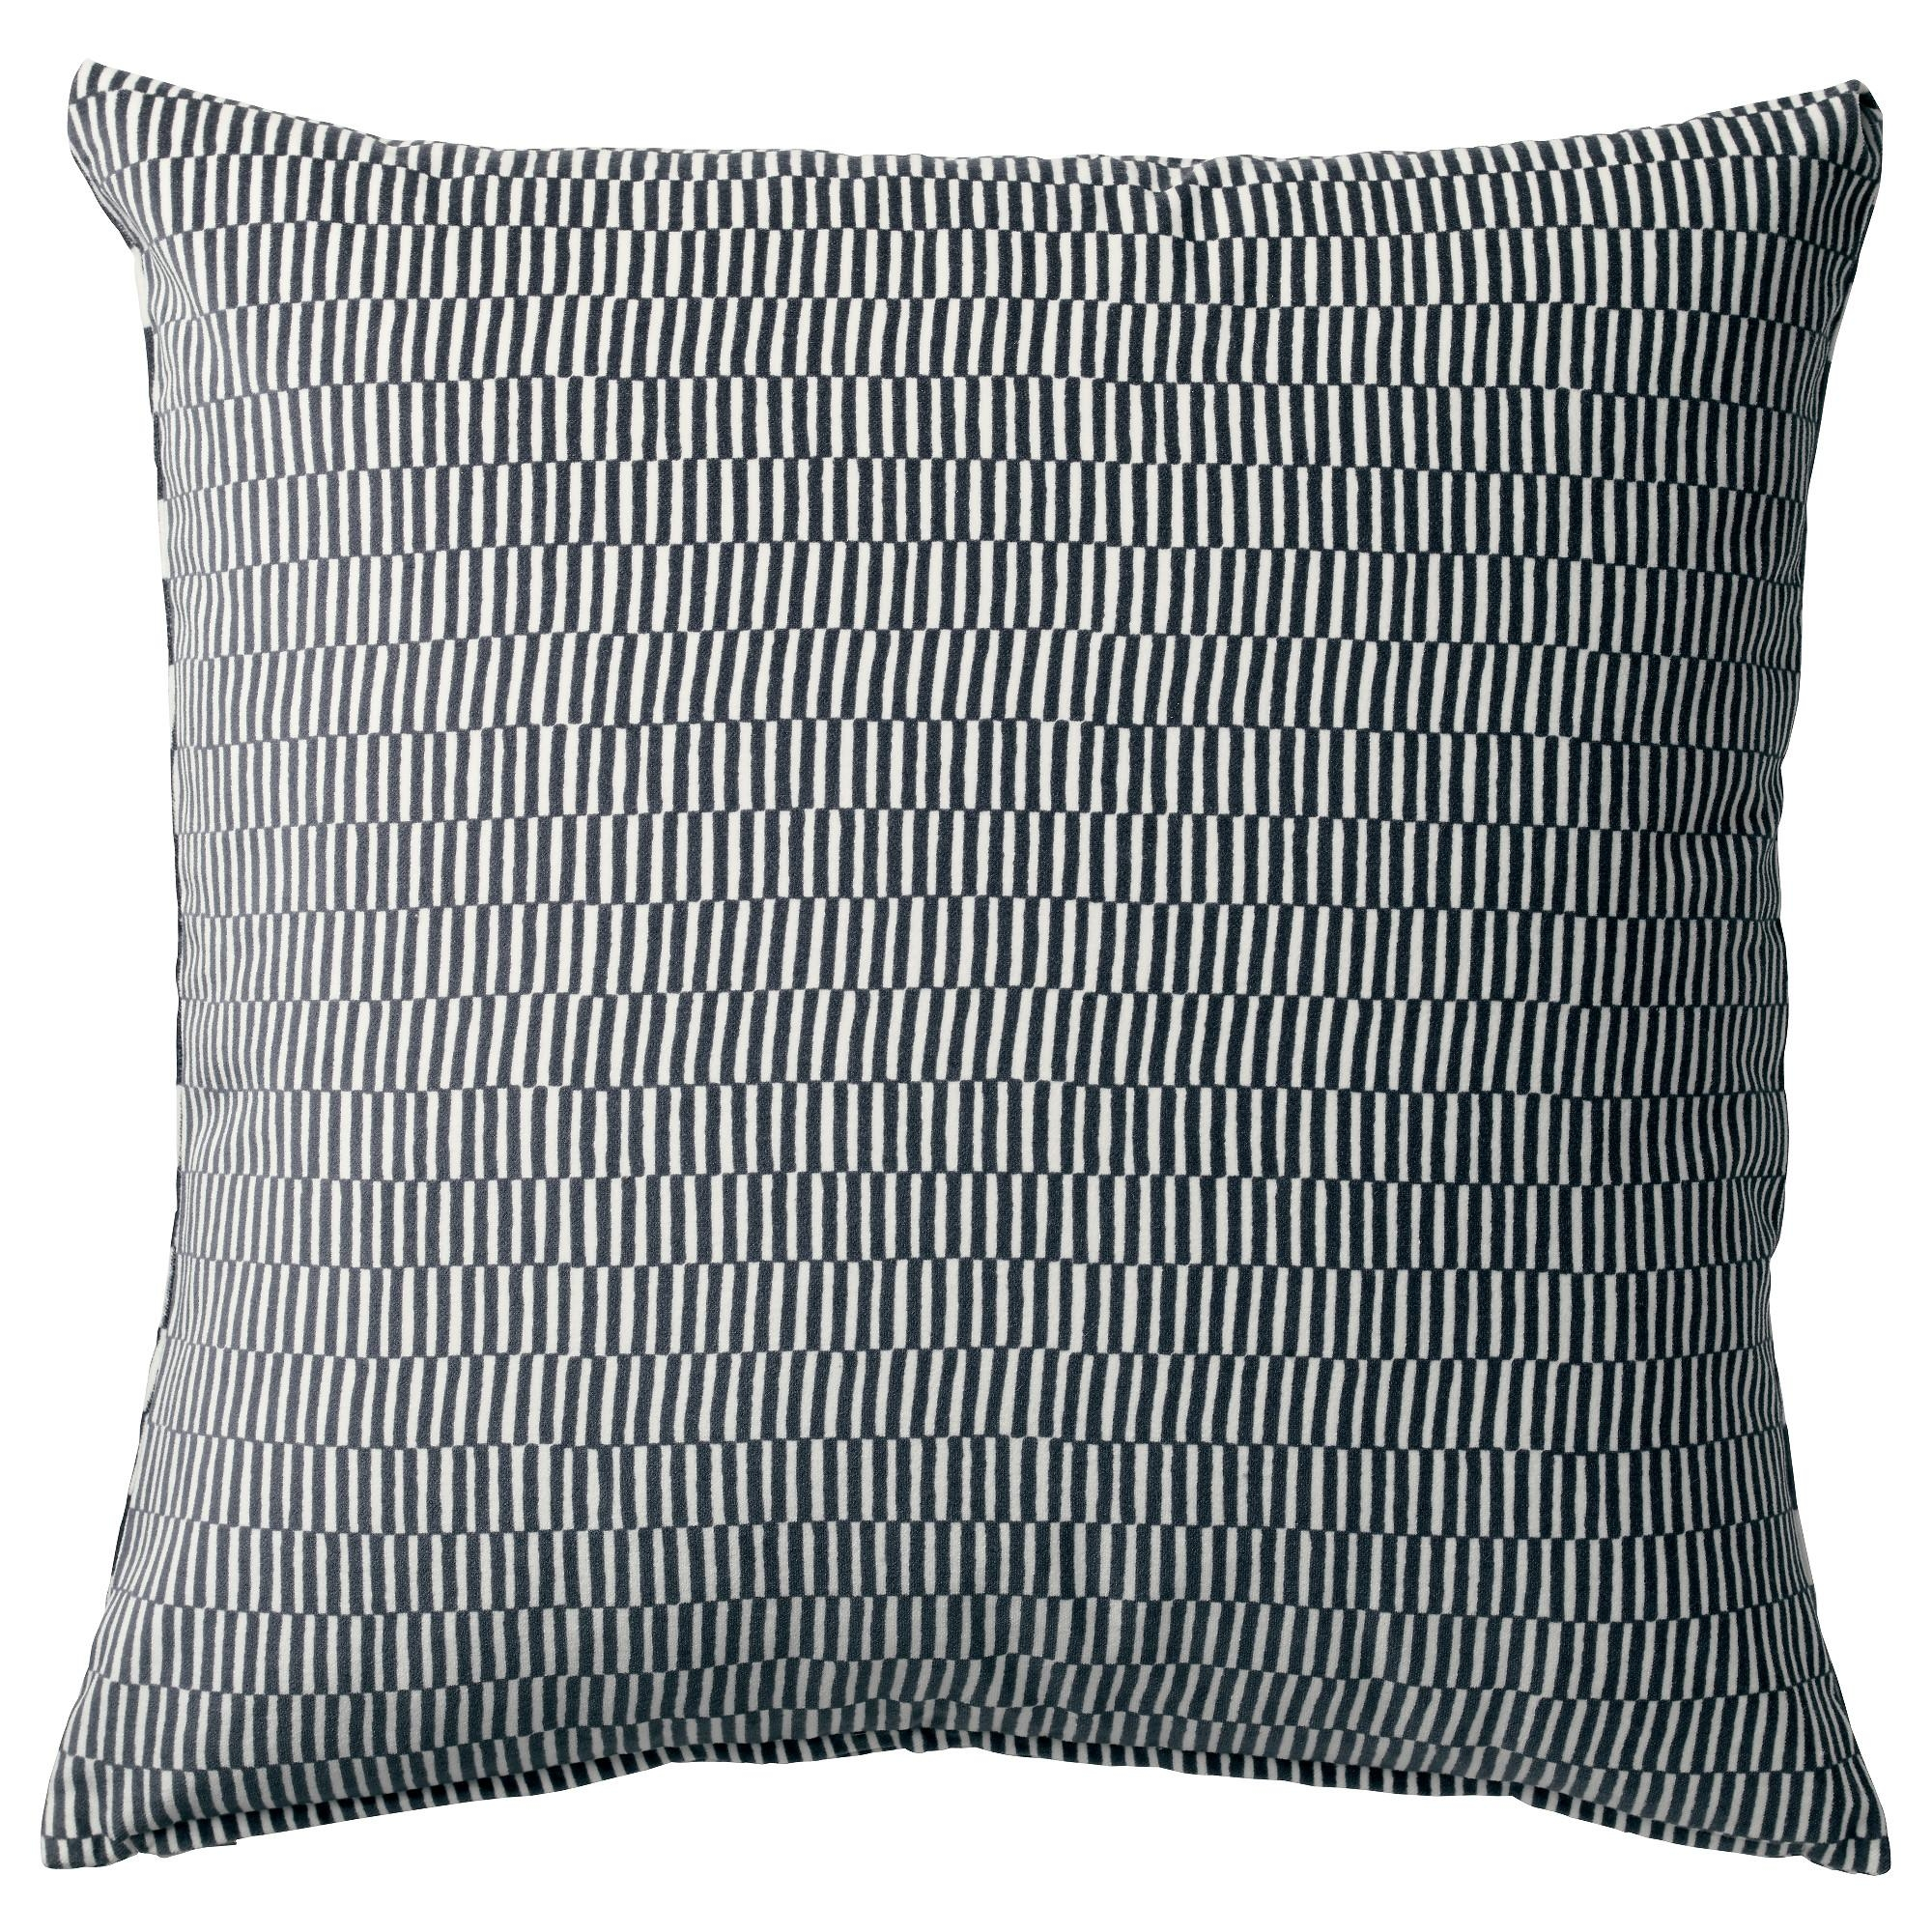 Cushion – Sofa And Seat Cushions – Ikea Pertaining To Sofa Cushions (Image 6 of 21)